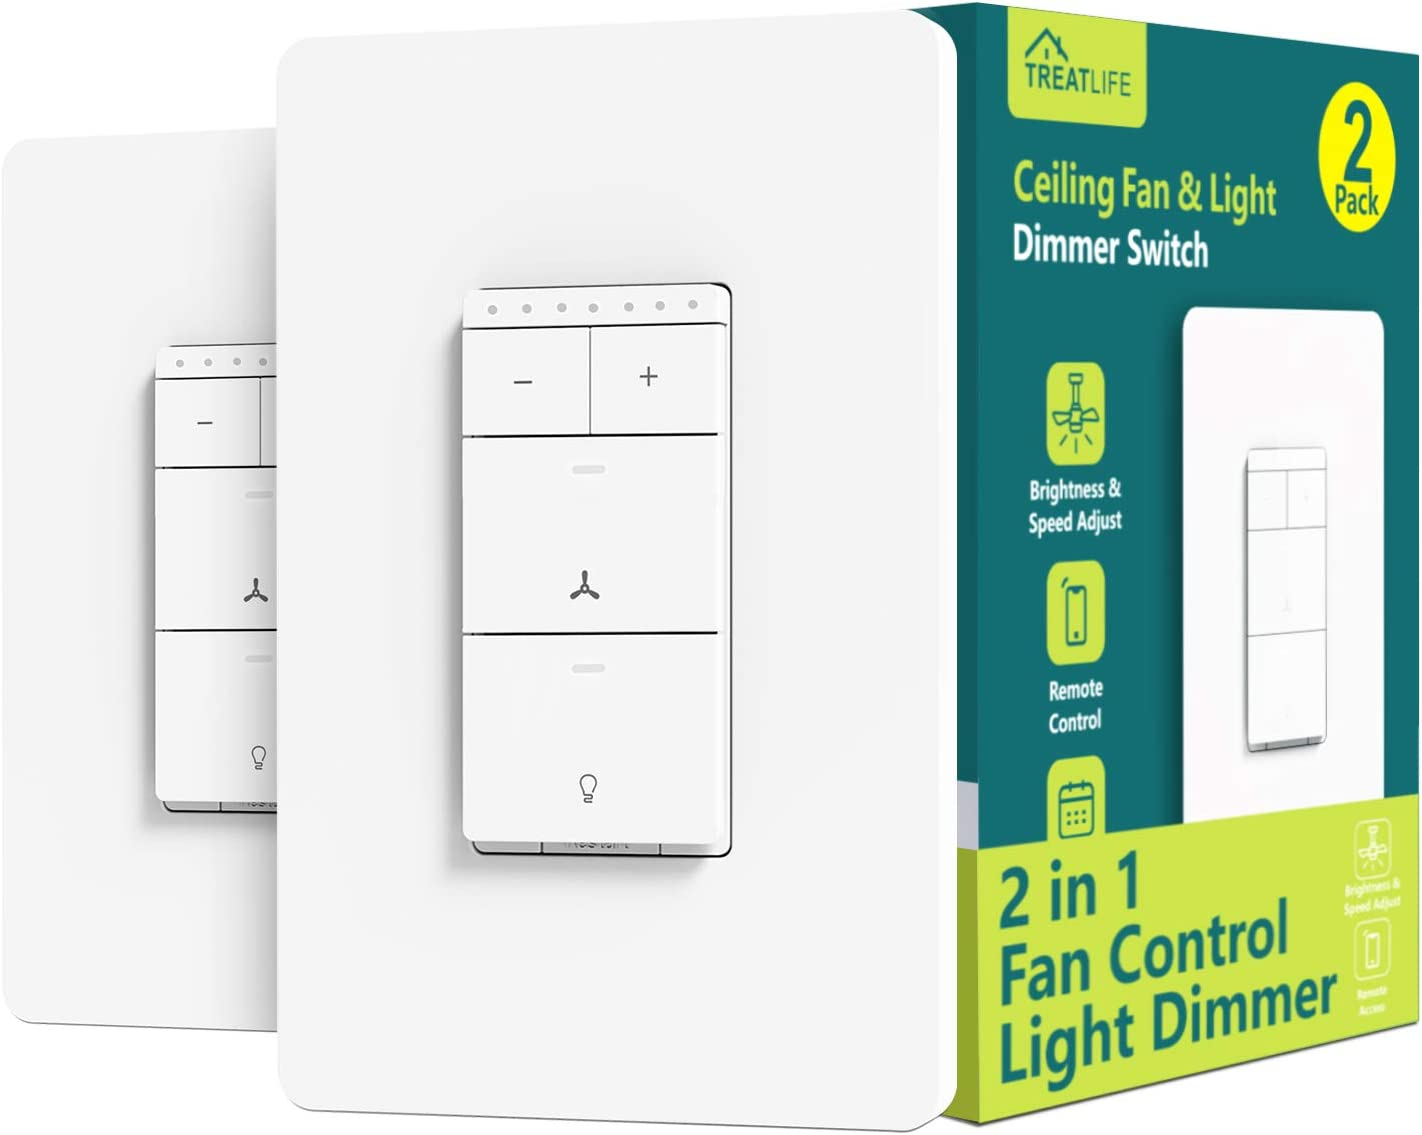 Smart Ceiling Fan Control and Dimmer Light Switch 2PACK, Neutral Wire Needed, Treatlife Single Pole Wi-Fi Light Switch Fan Speed Control, Works with Alexa/Google Assistant, Schedule, Remote Control